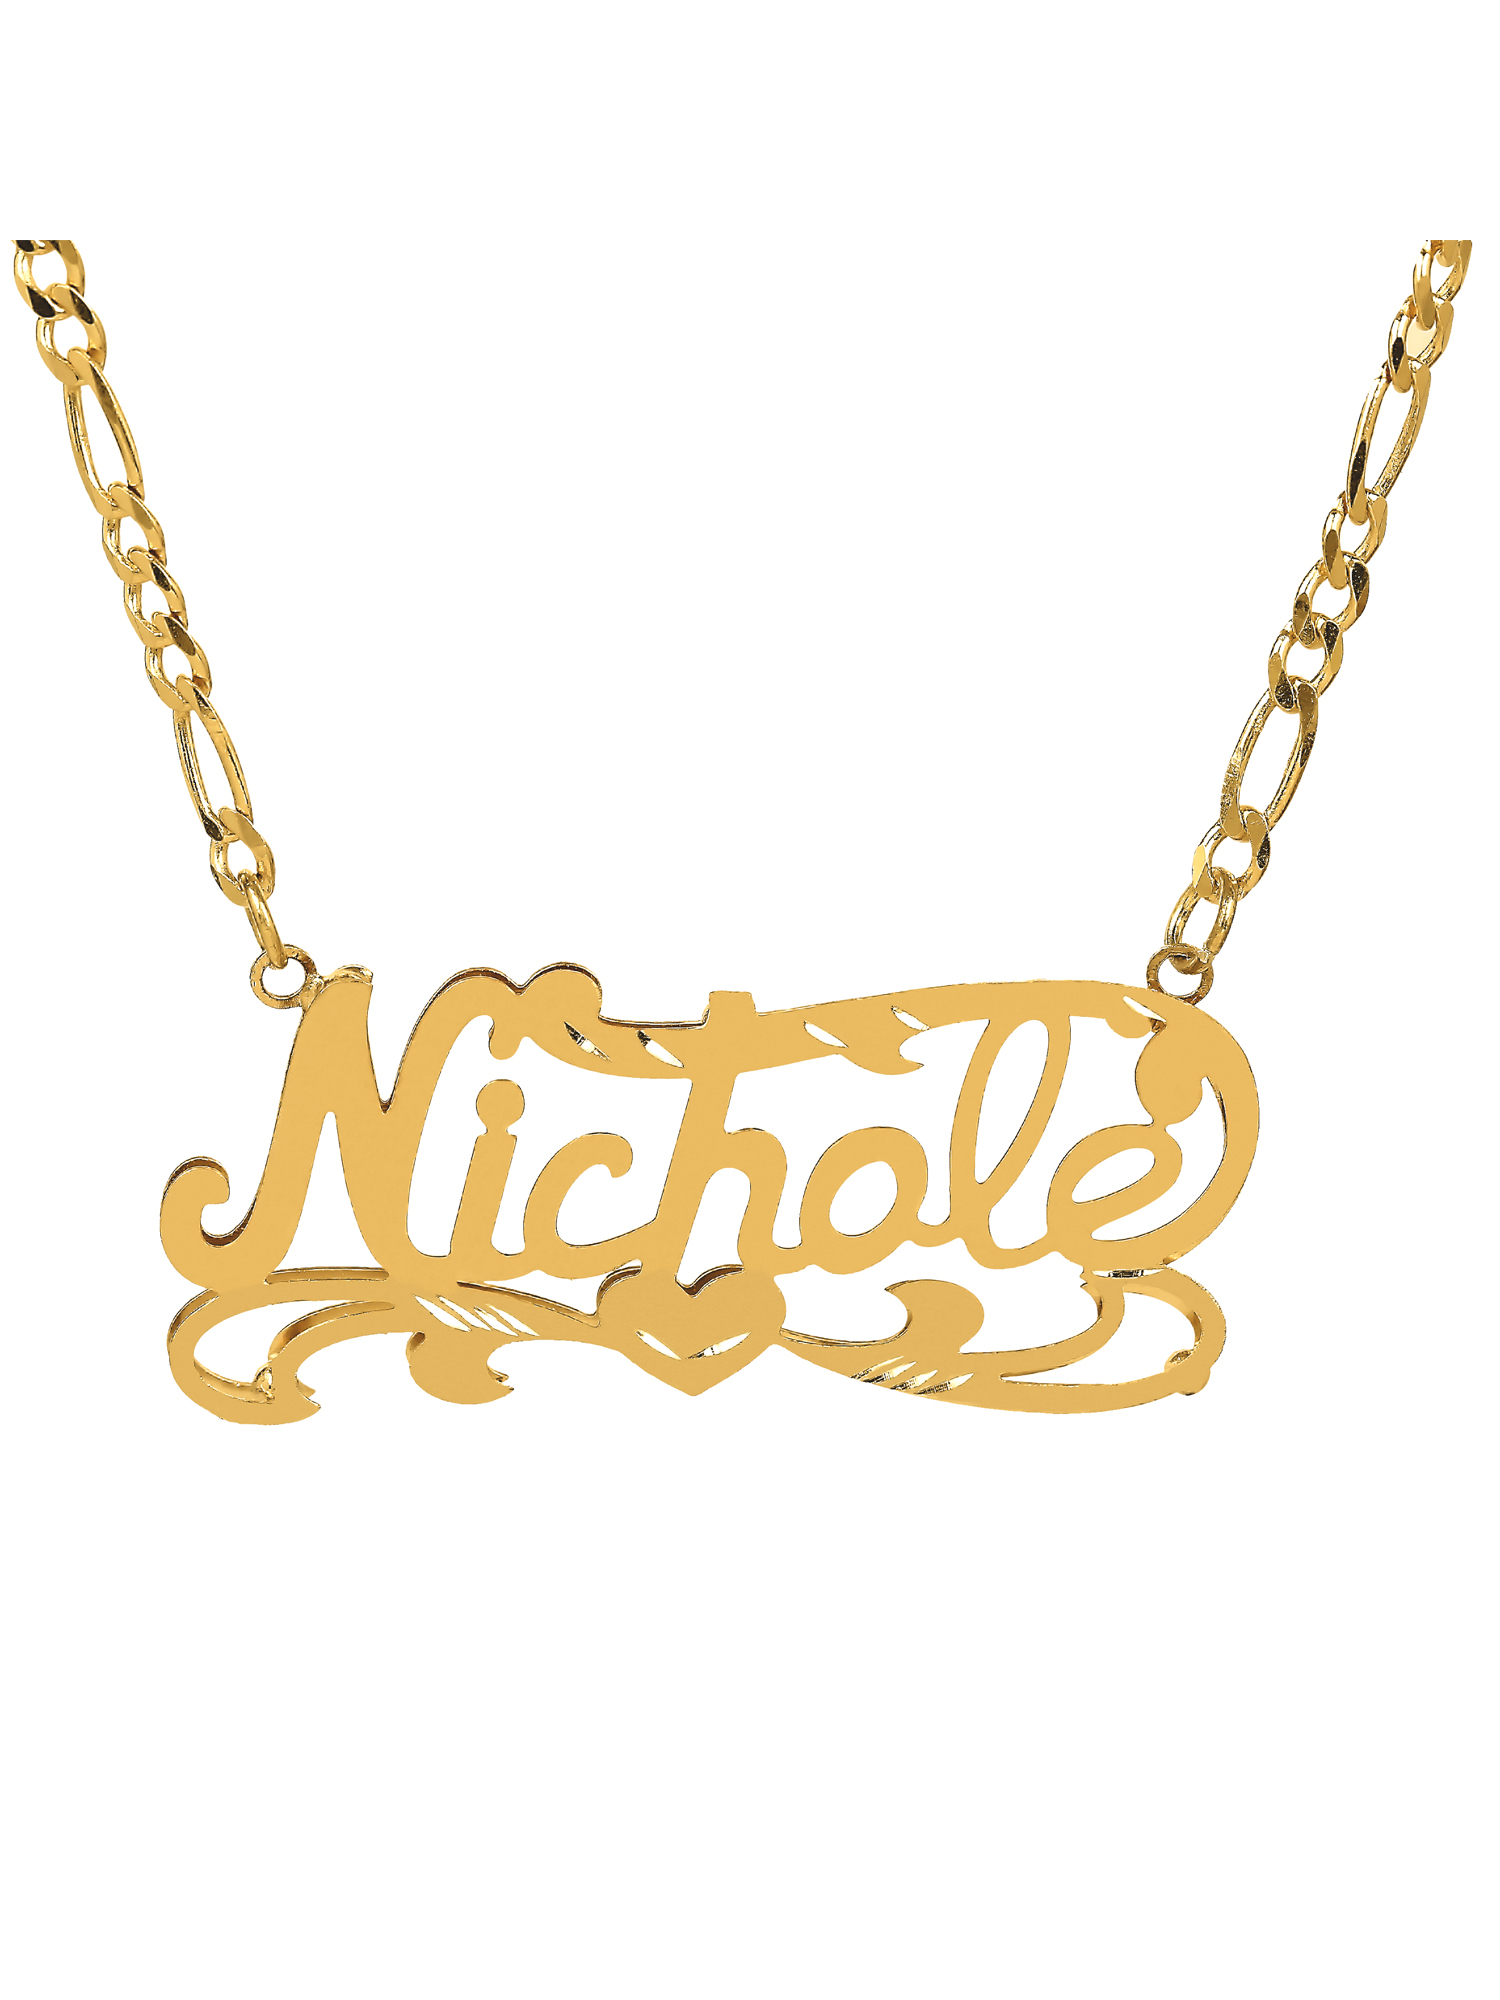 Personalized 10K Yellow Gold Diamond Cut Nameplate Necklace with an 18 inch Gold Filled Figaro Chain by Supplier Generic